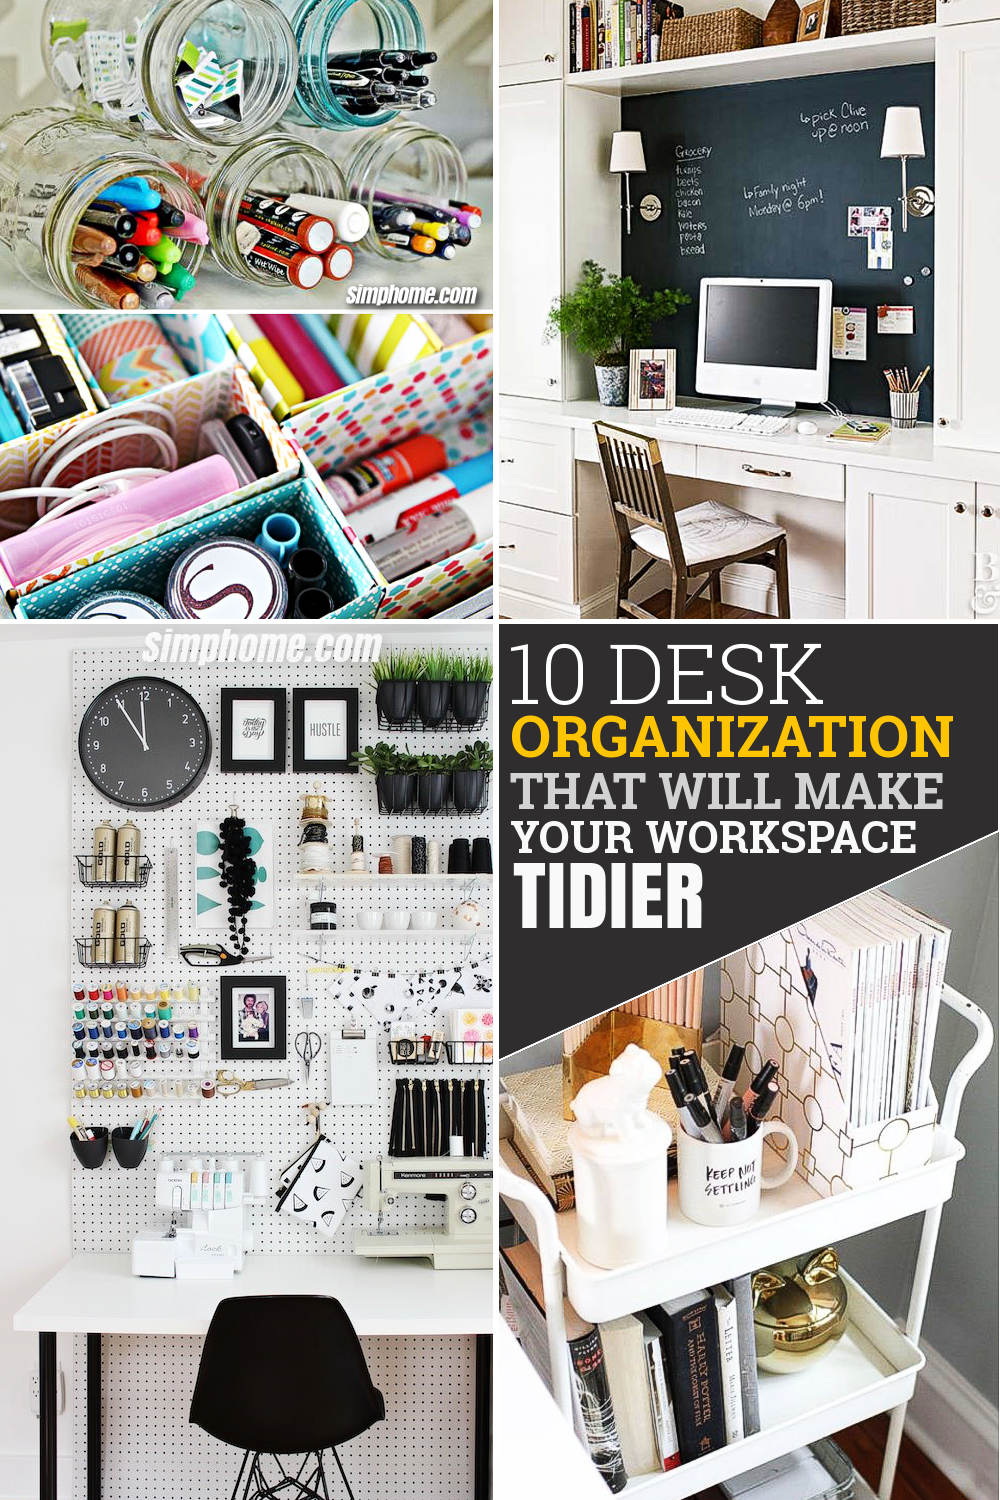 10 Desk Organization that will Make Your Workspace Tidier via Simphome com Pinterest Featured Image